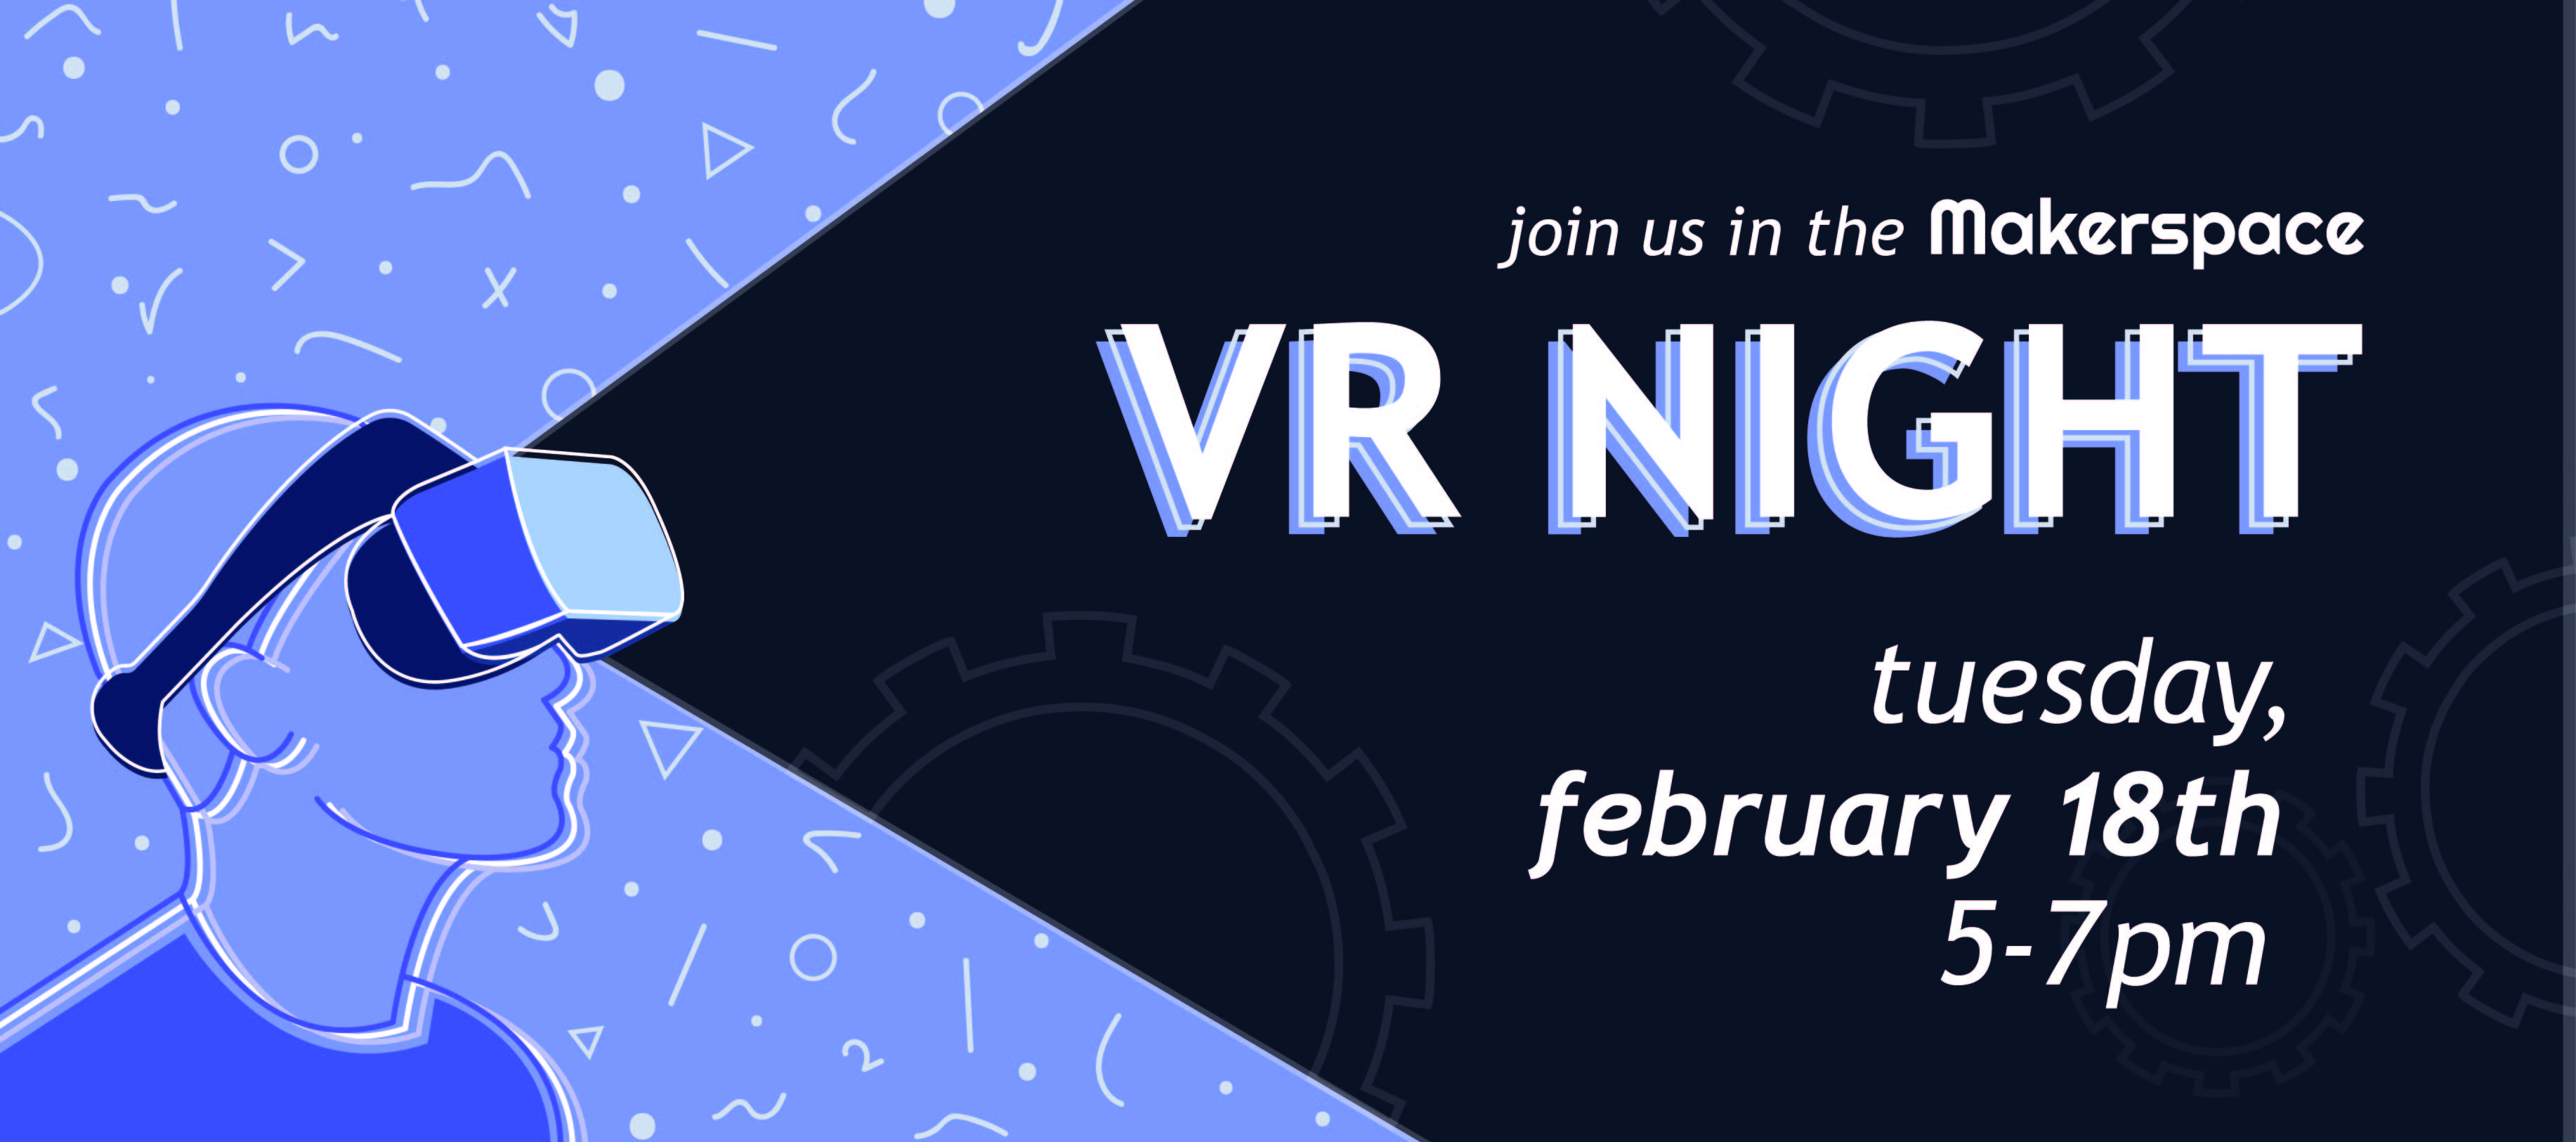 VR Night Tuesday February 18th